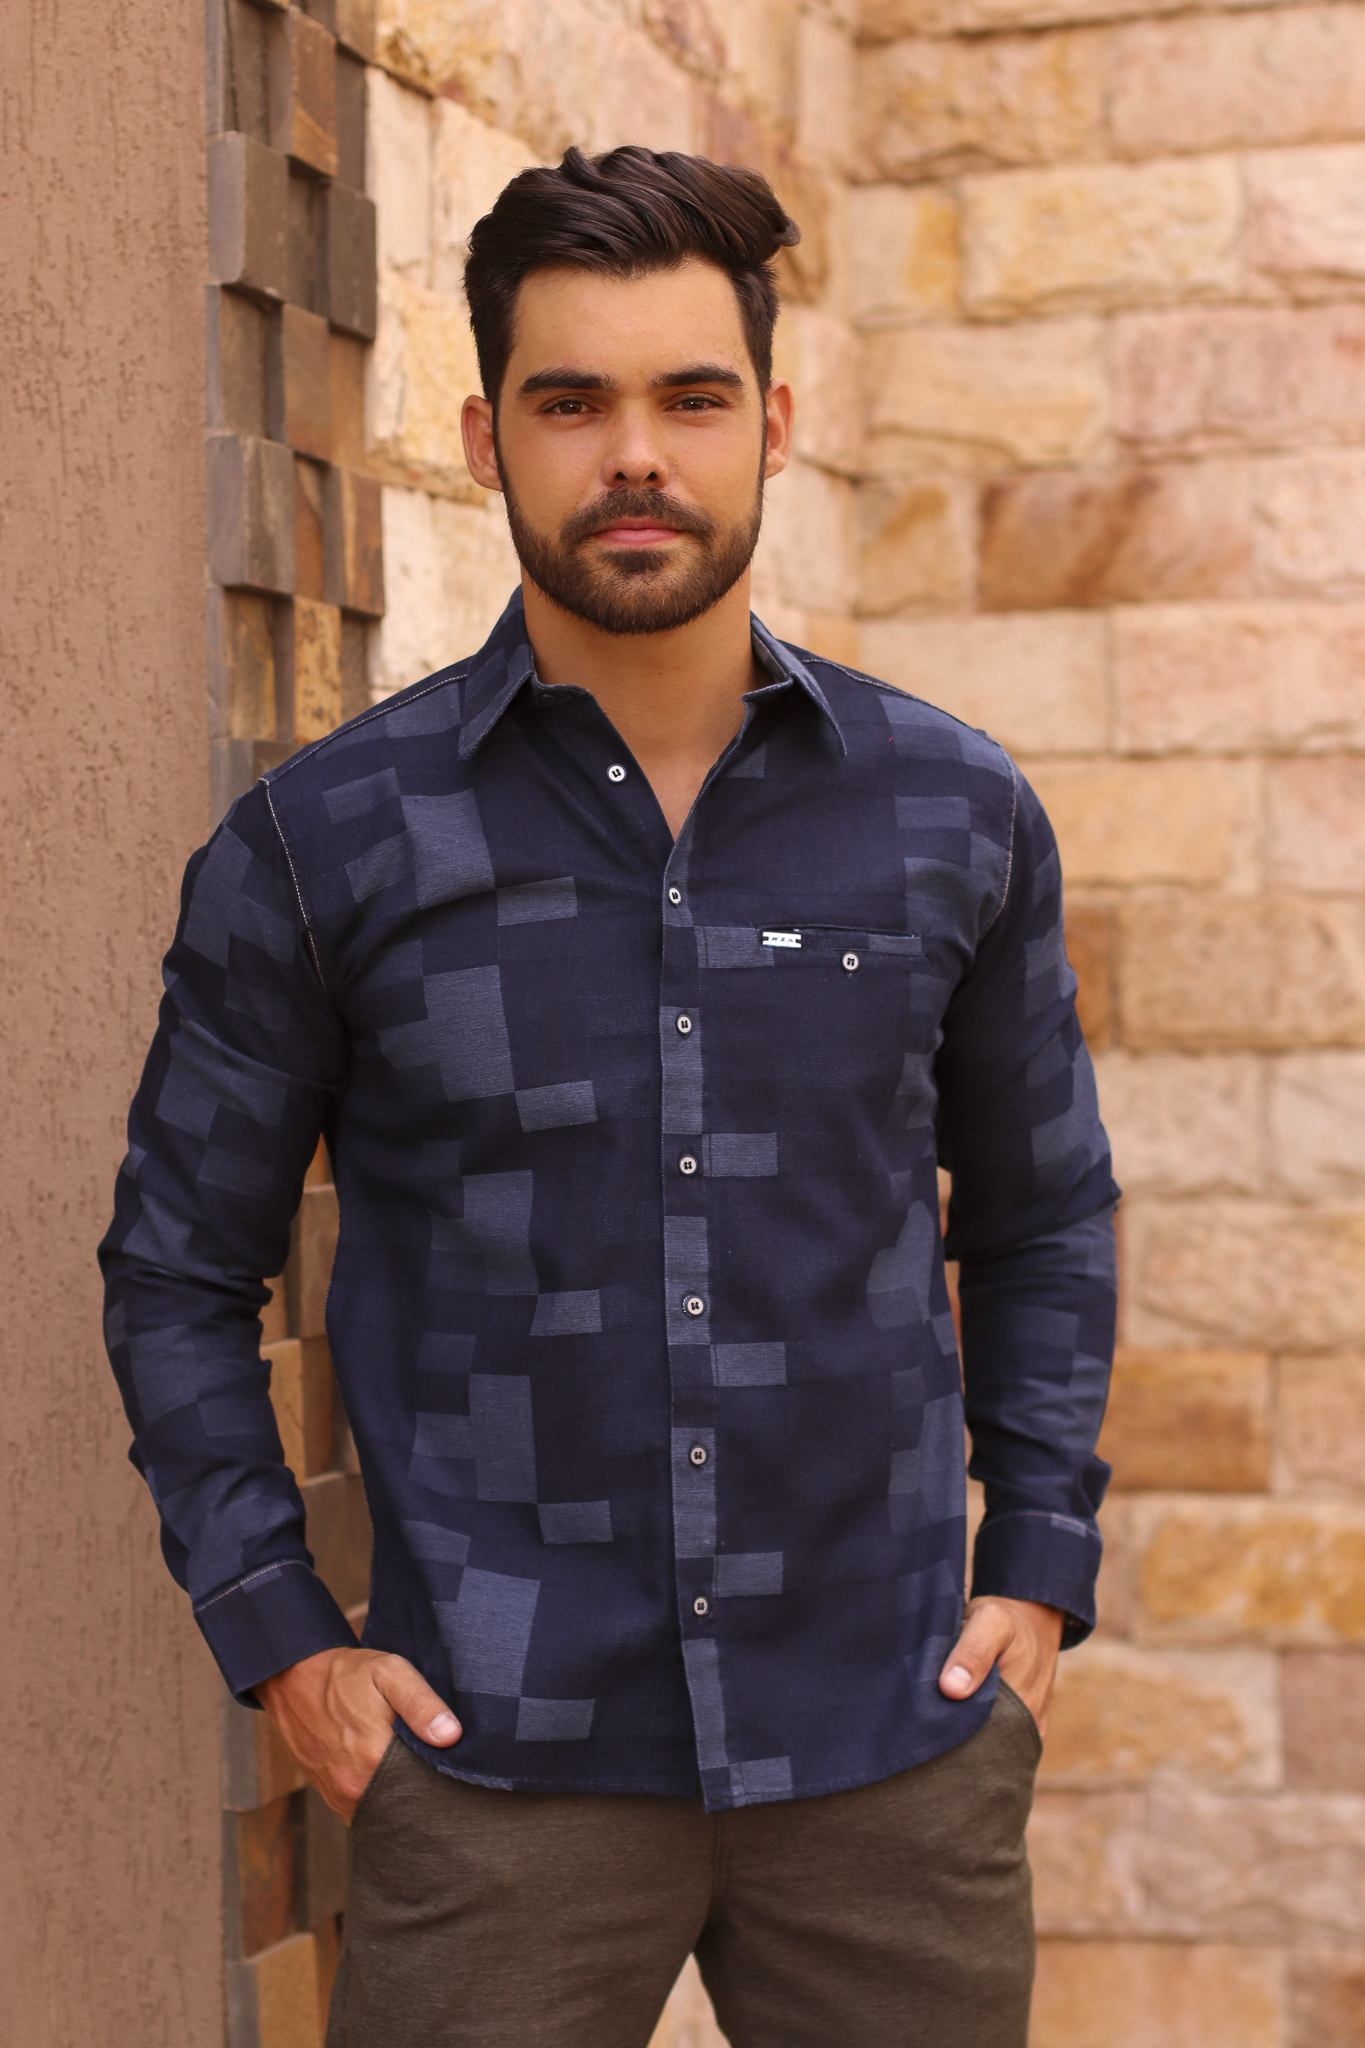 Camisa jeans-kza camisetes